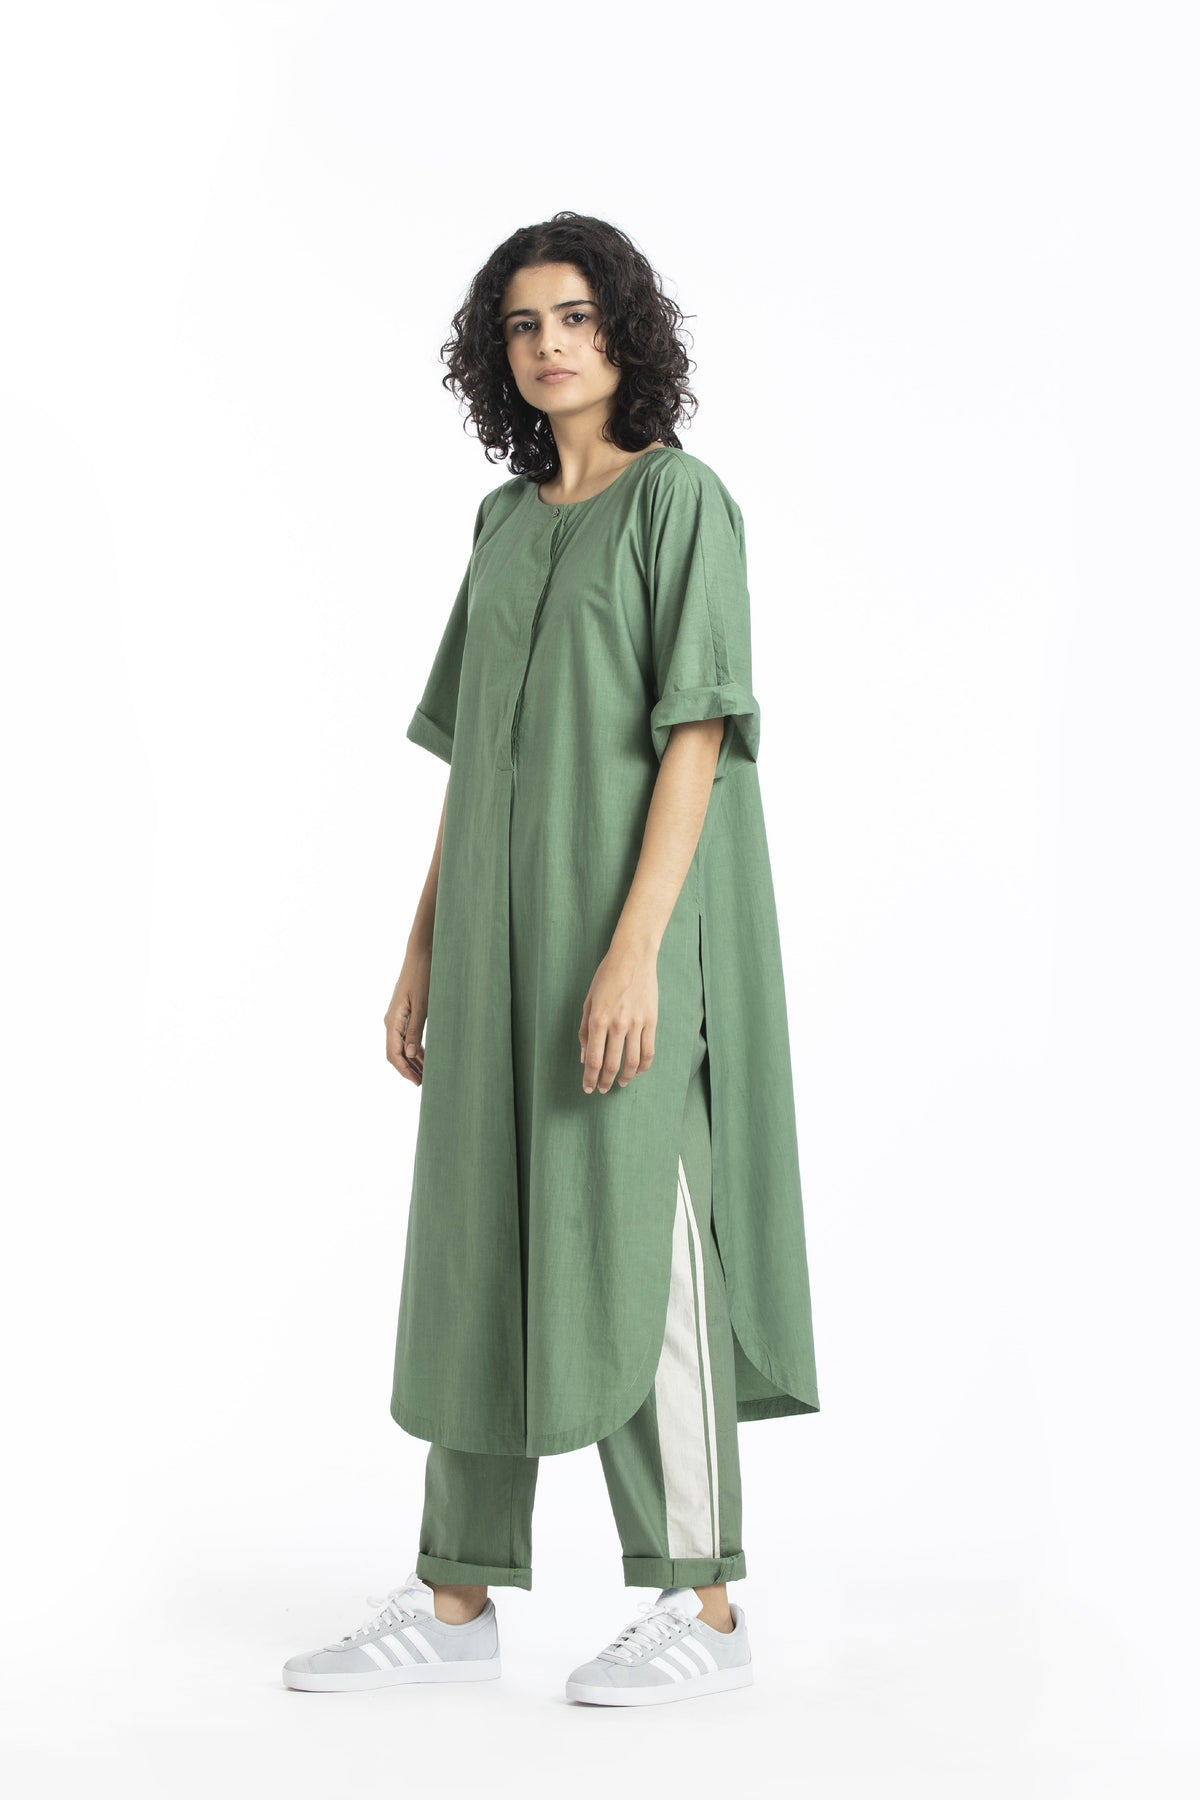 Three Shirts & Tops Pure cotton poplin floor length top